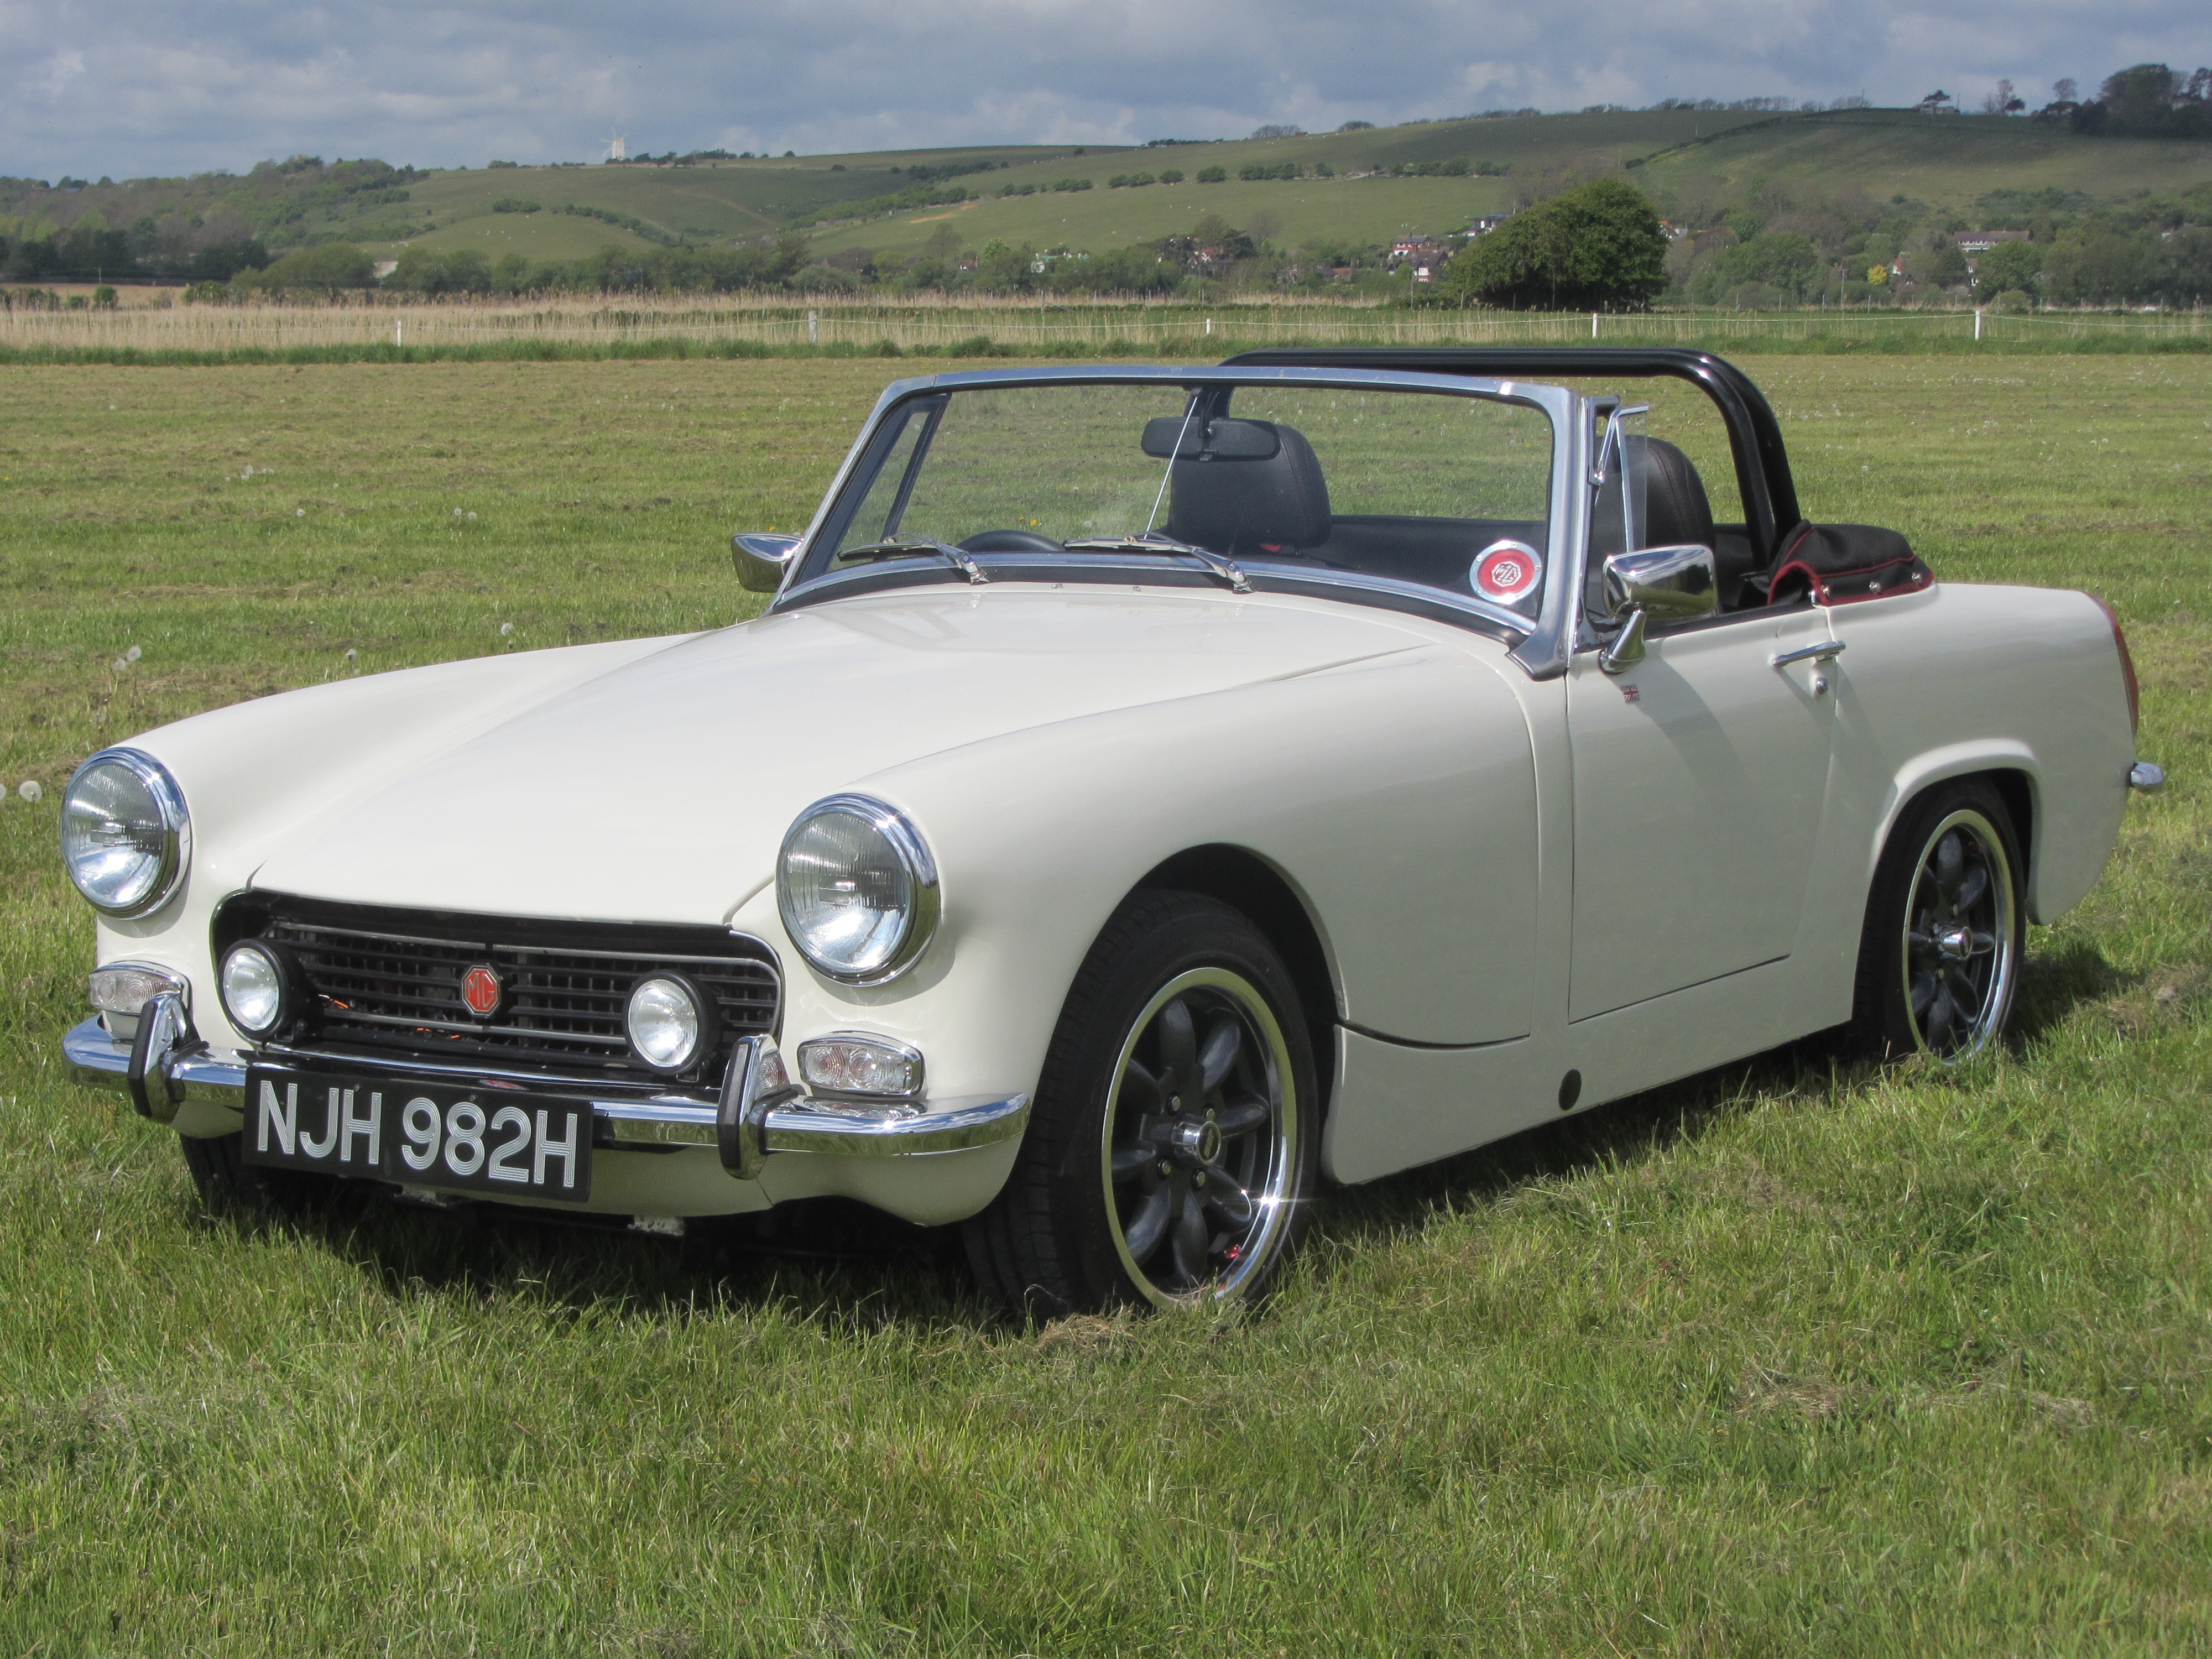 MG Midget complete build by Frontline MG 1380cc for sale